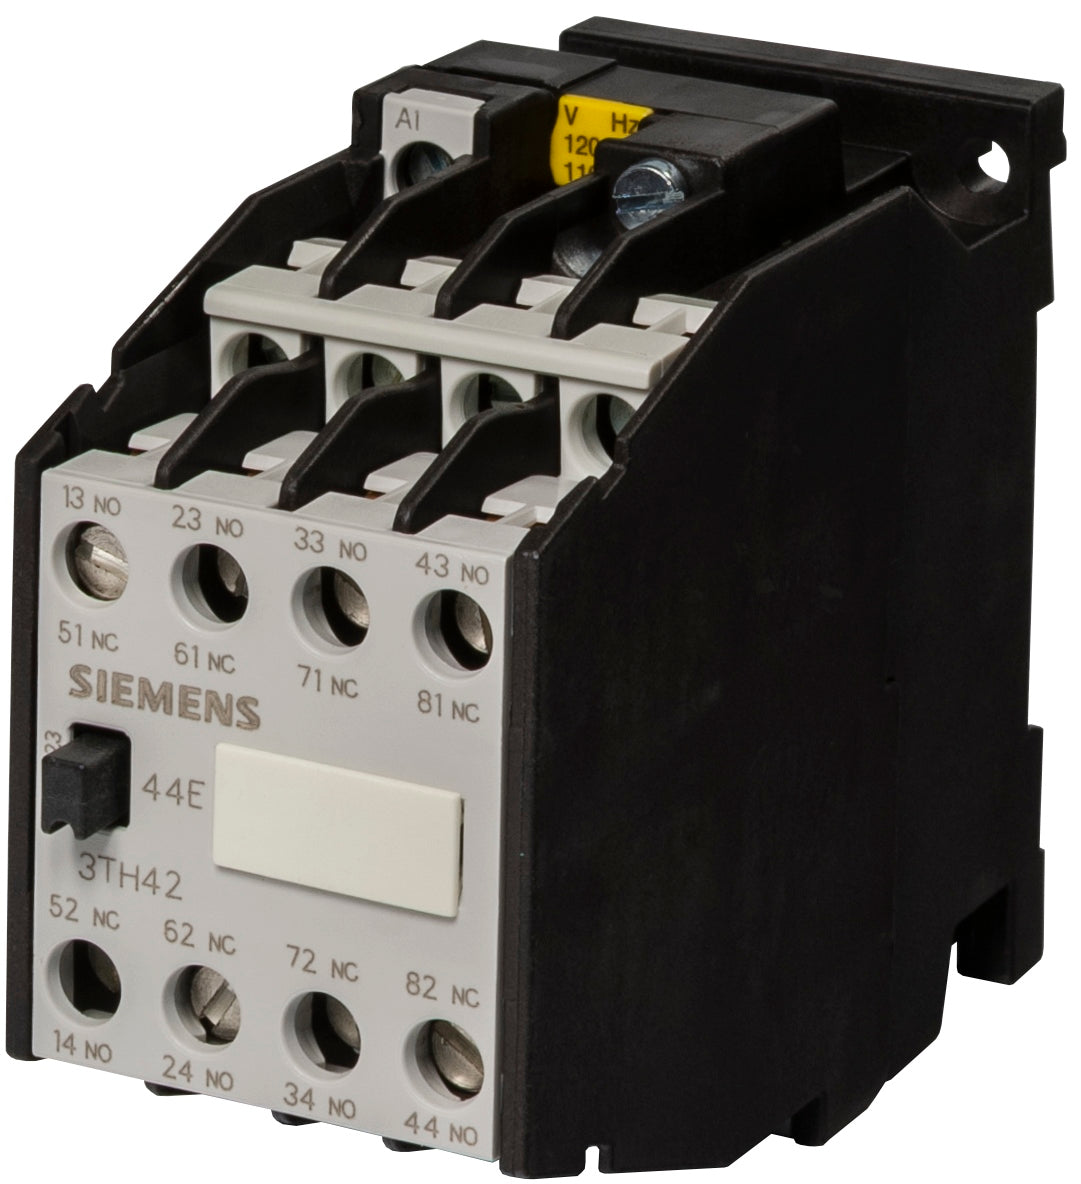 3th4 Control Relays Siemens Relay With No And Nc Contacts 8 Fixed